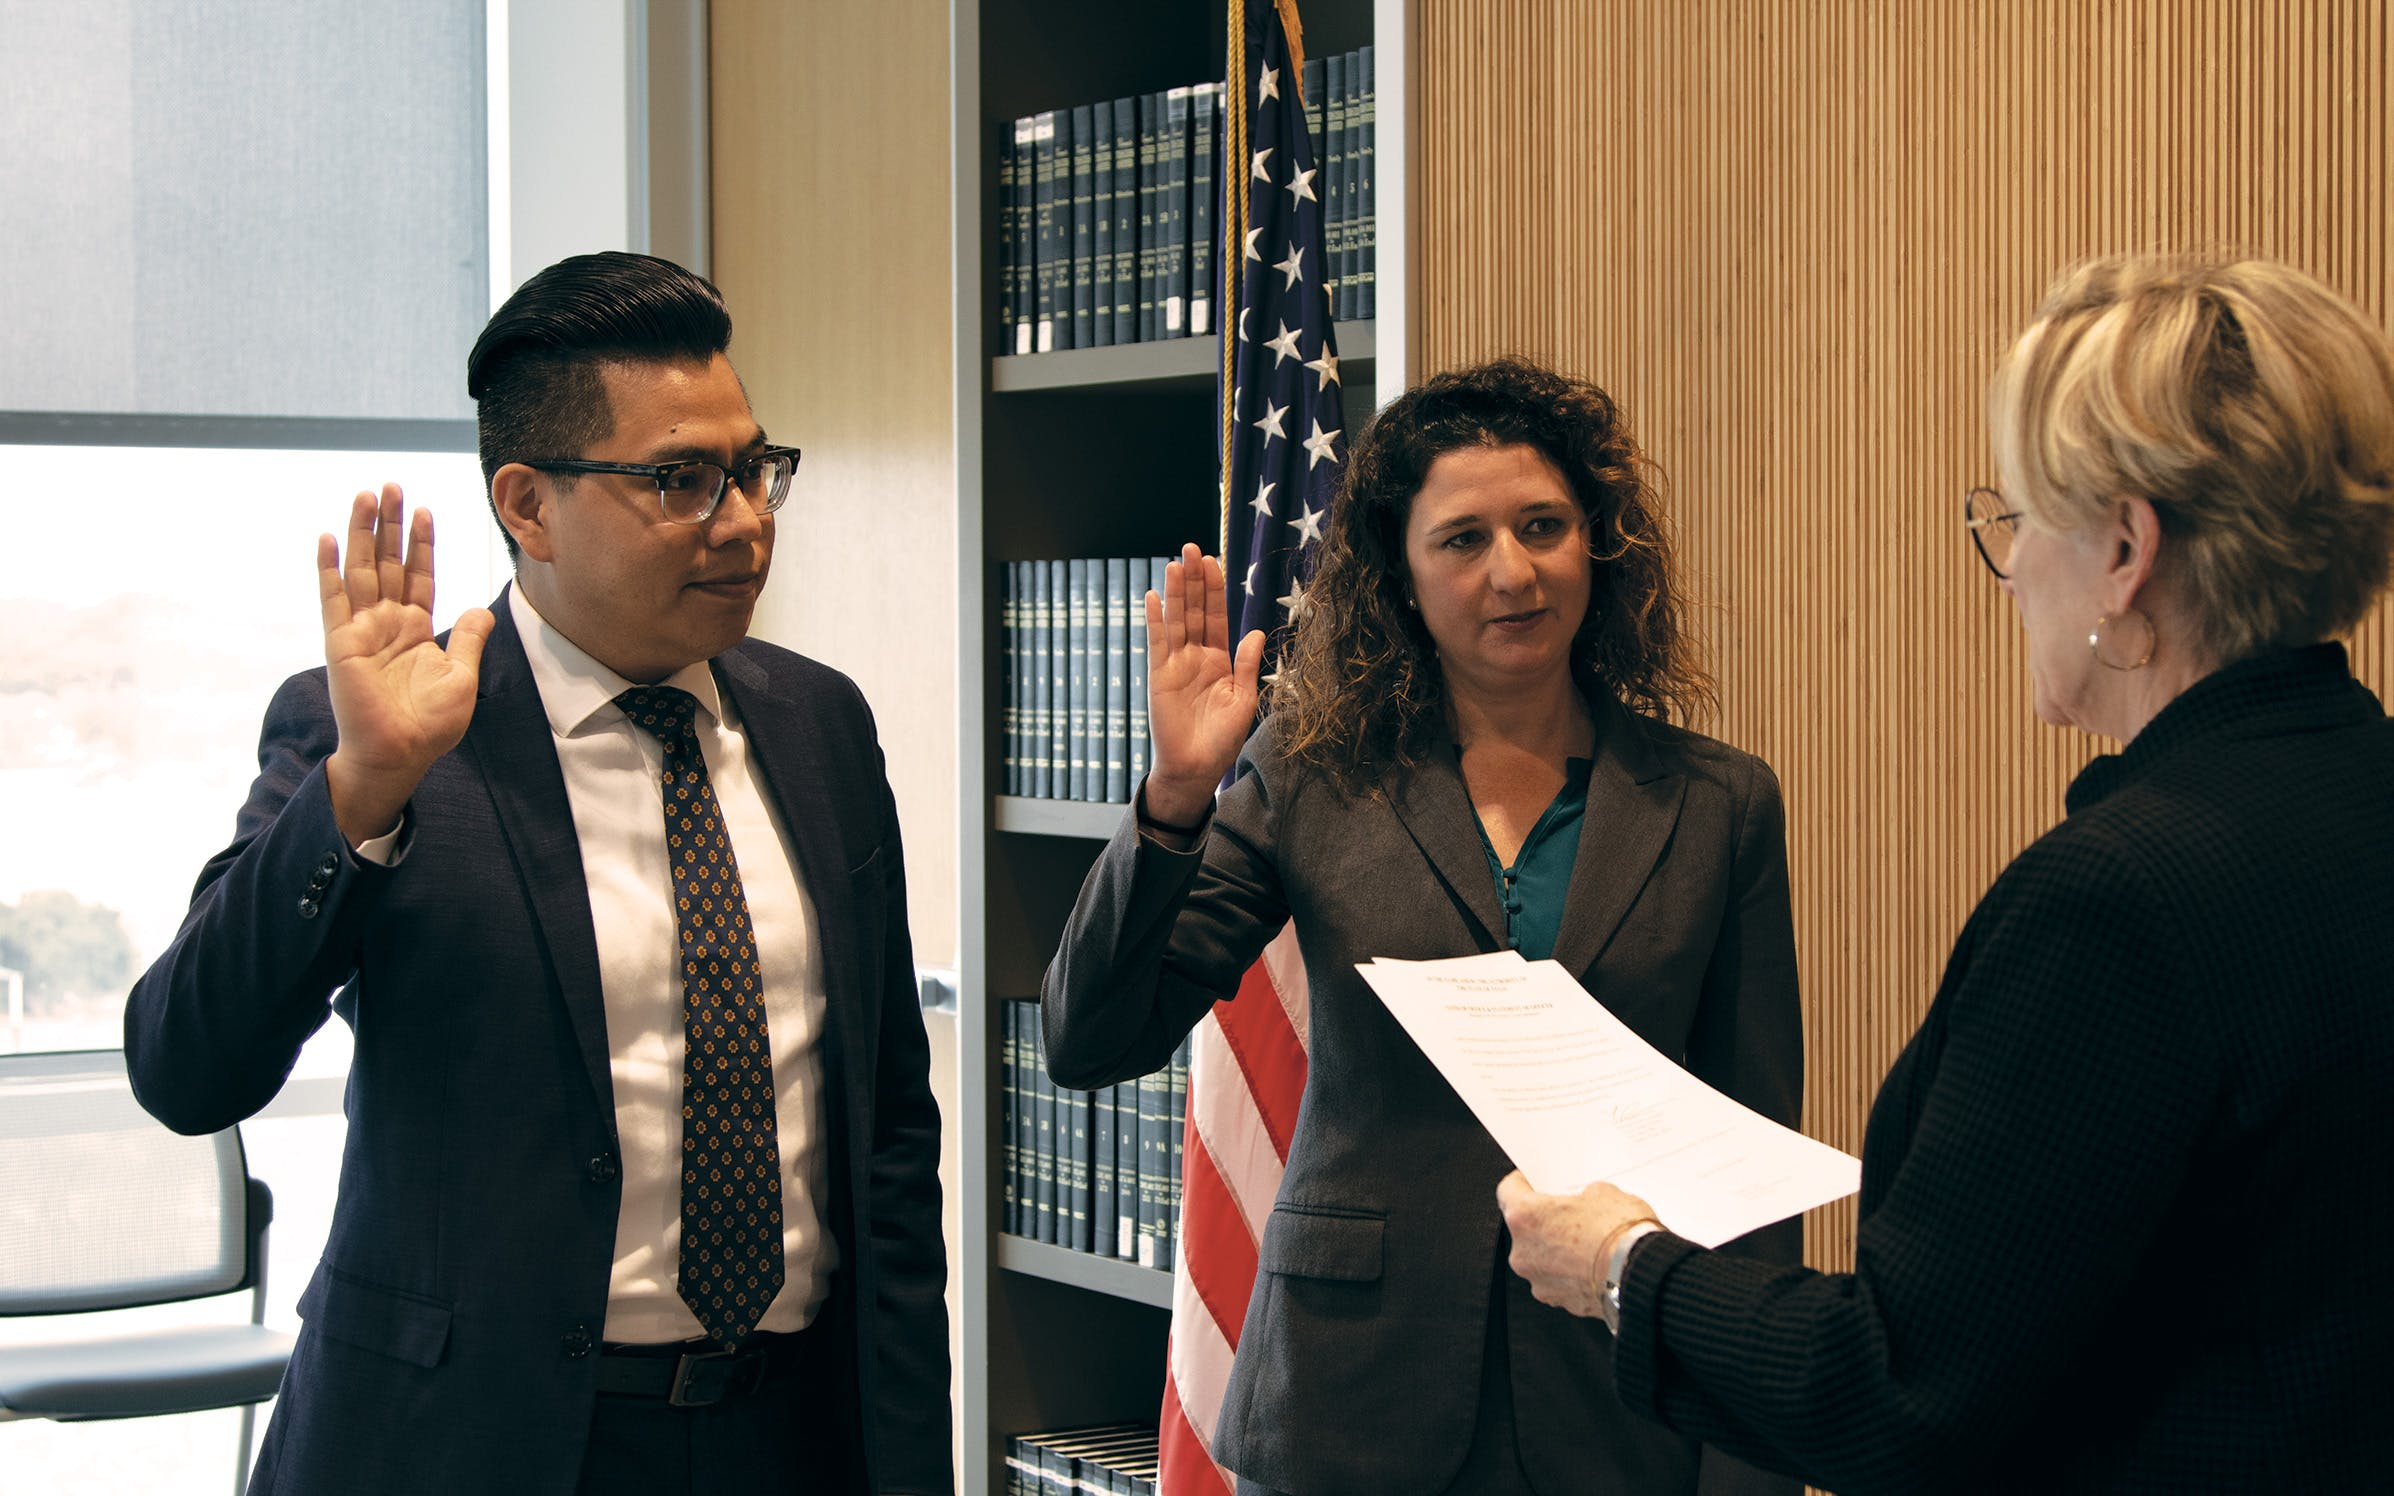 District Attorney Margaret Moore (far right) swearing in Villalobos (left) and fellow lawyer Gwen Jacobs in Austin on December 16, 2019.